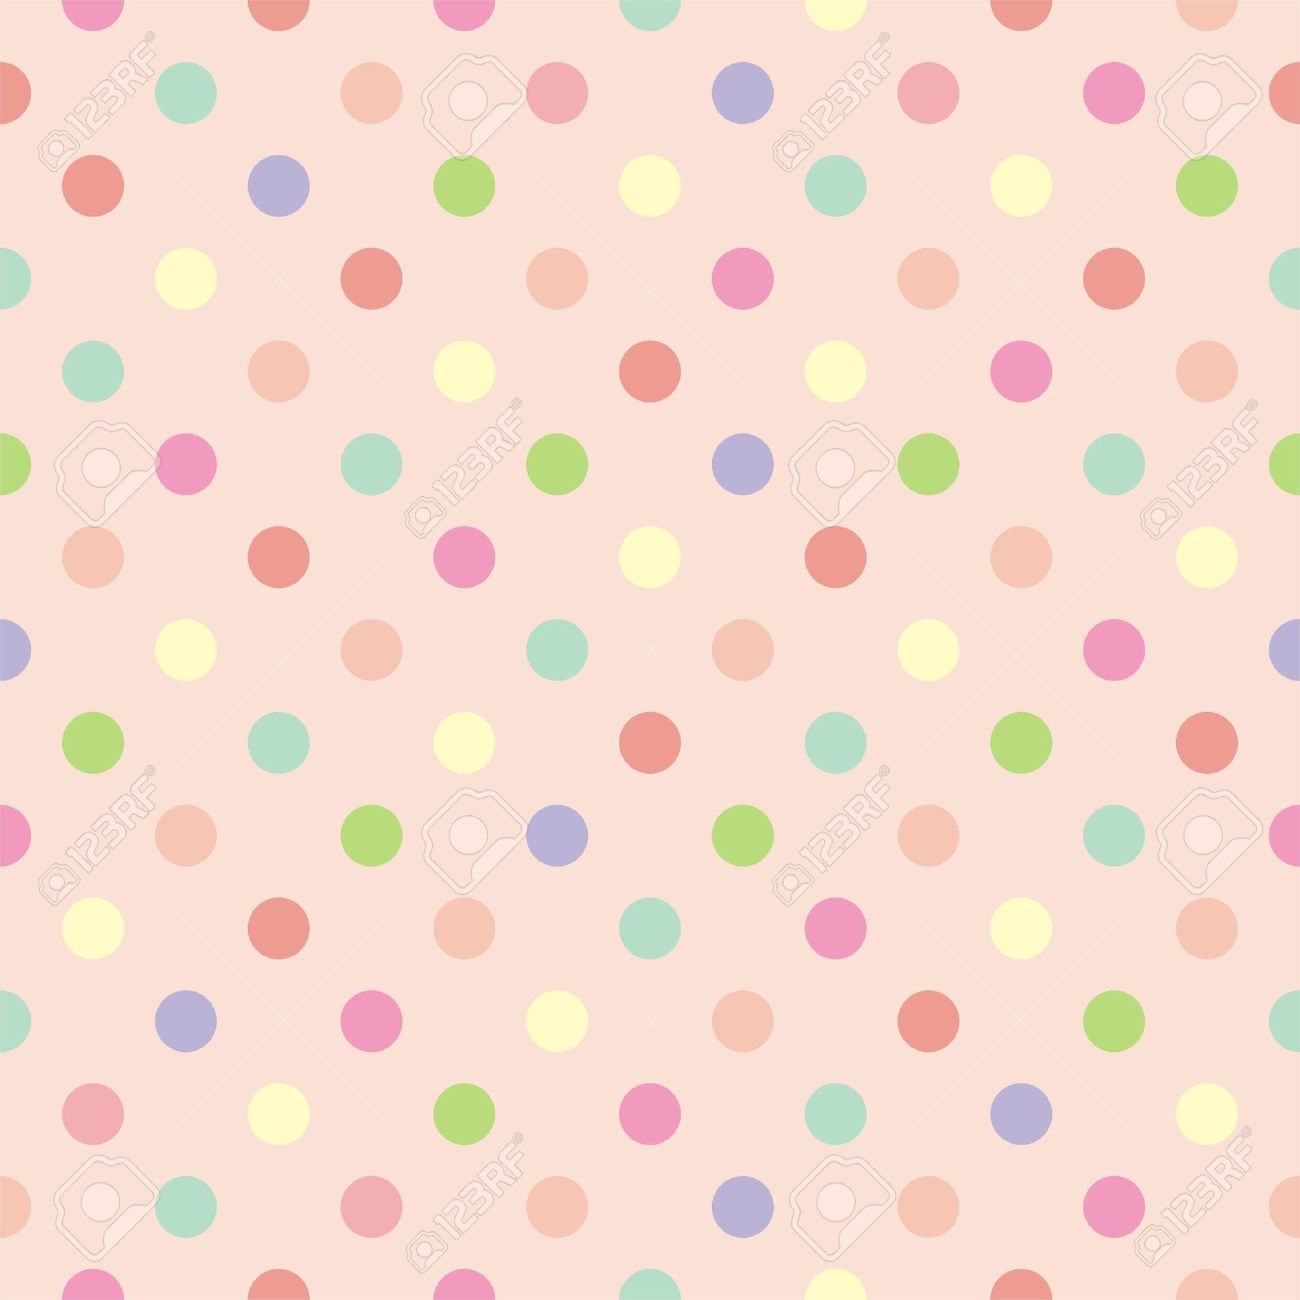 Colorful Vector Background With Red Pink Green Blue And Yellow Polka Dots On